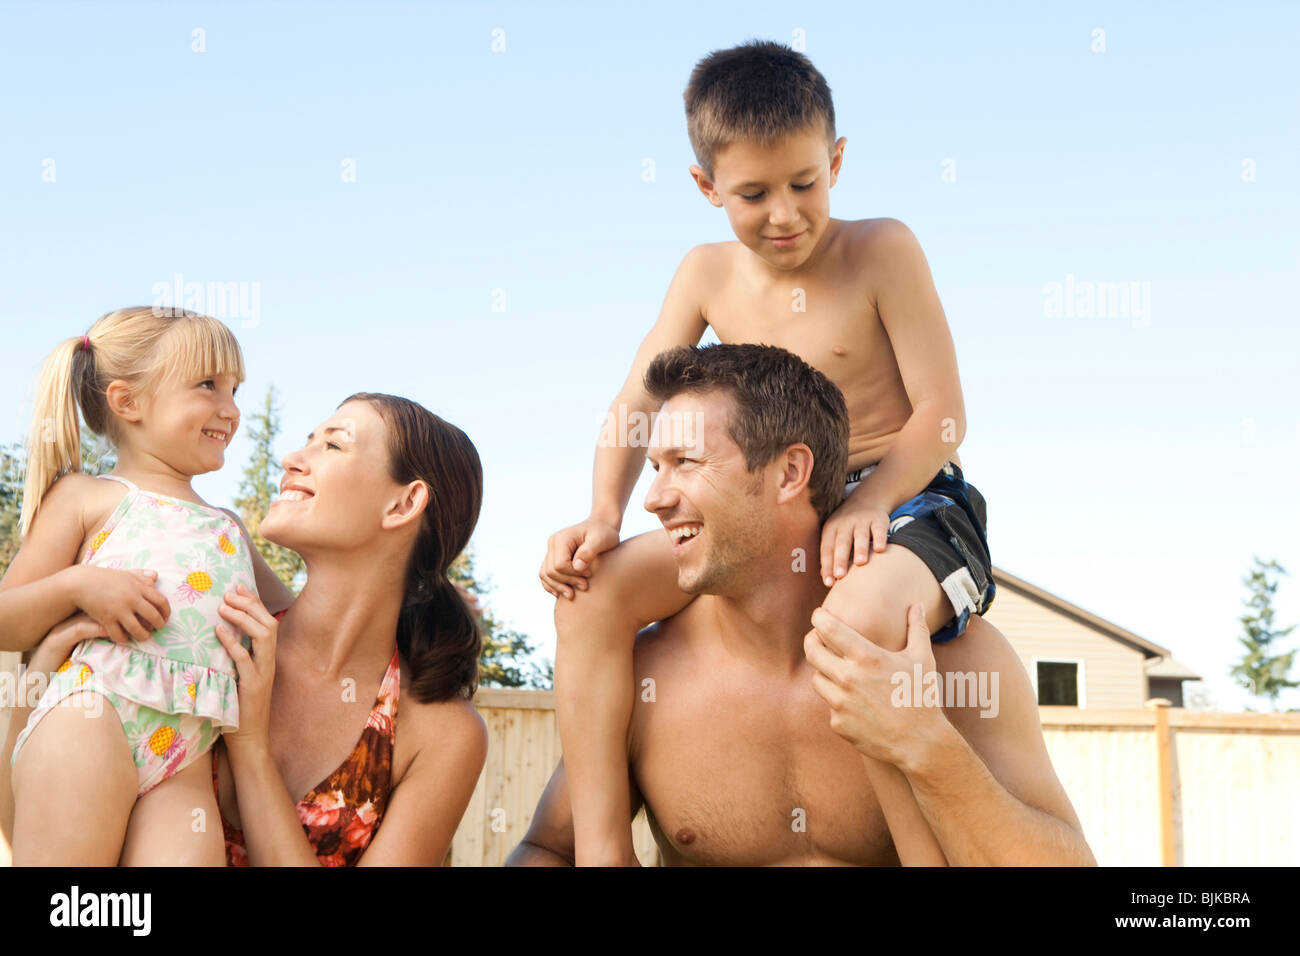 Family posing outdoors - Stock Image